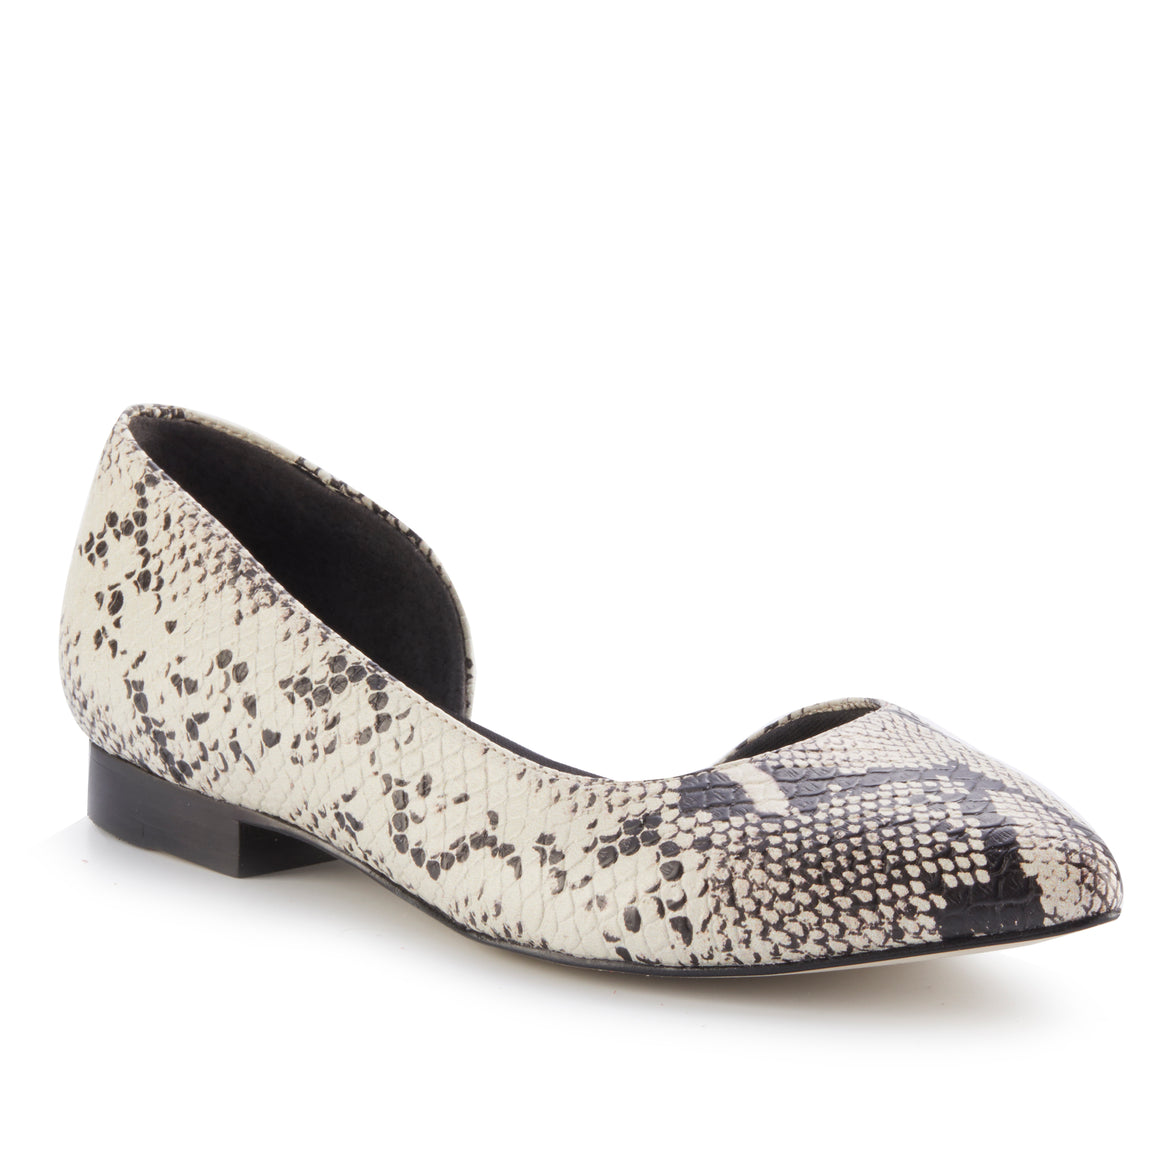 Raya: Bone & Black Snake Print Leather NEW